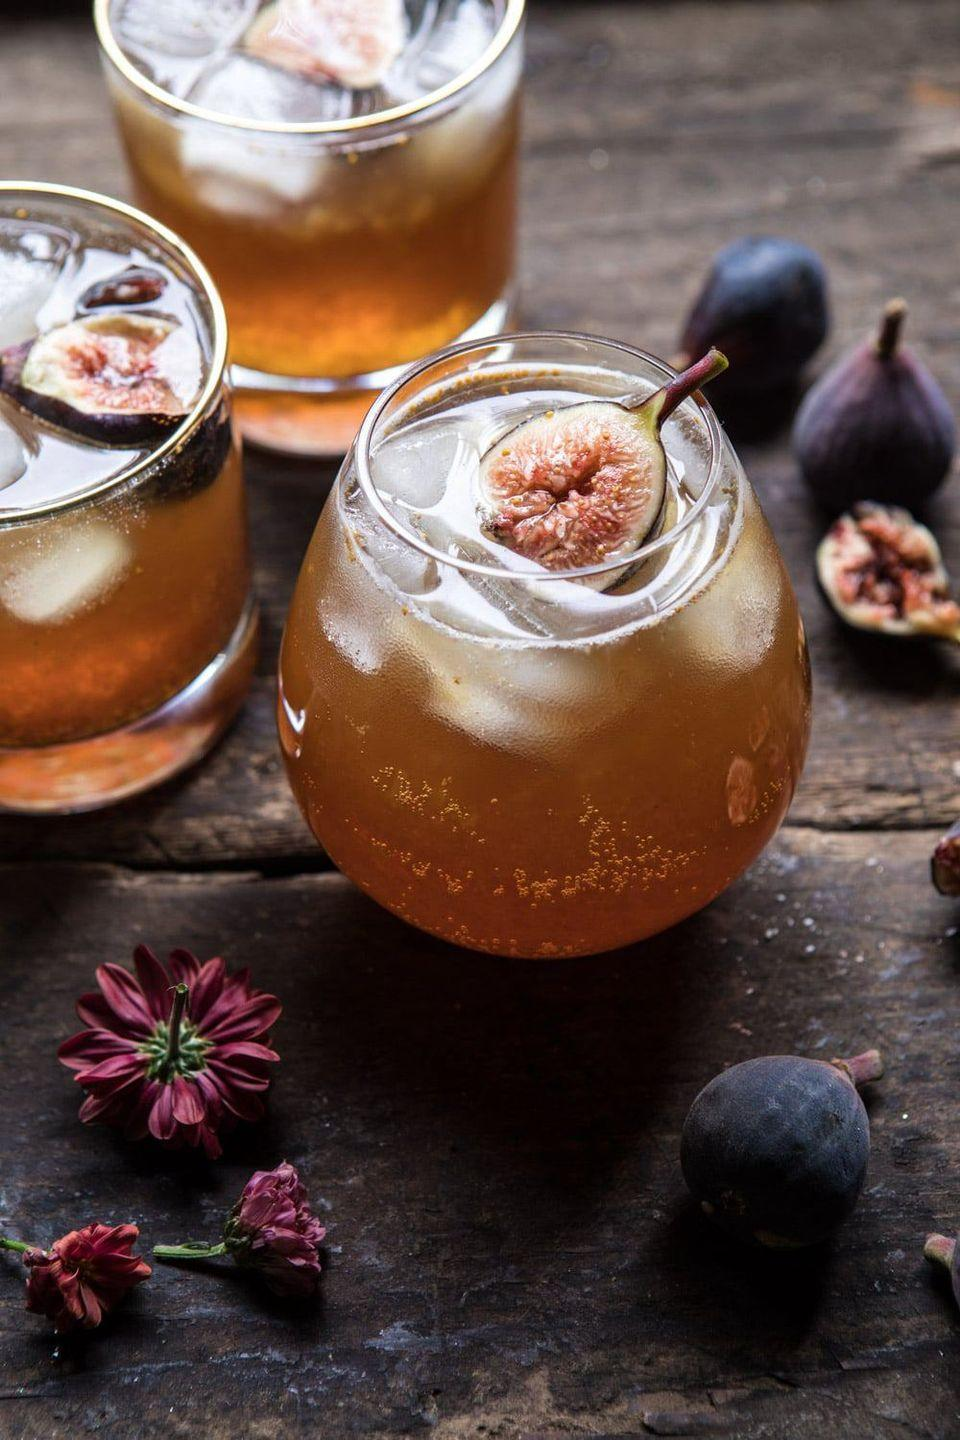 """<p>Figs are totally delicious, and one of the most overlooked flavors of fall. That's why you've got to try this fig-infused bourbon-cider cocktail!</p><p><strong>Get the recipe at <a href=""""https://www.halfbakedharvest.com/fig-bourbon-cider-smash/"""" rel=""""nofollow noopener"""" target=""""_blank"""" data-ylk=""""slk:Half Baked Harvest"""" class=""""link rapid-noclick-resp"""">Half Baked Harvest</a>.</strong></p><p><strong><a class=""""link rapid-noclick-resp"""" href=""""https://go.redirectingat.com?id=74968X1596630&url=https%3A%2F%2Fwww.walmart.com%2Fbrowse%2Fdining-entertaining%2Fdrinkware%2F4044_623679_639999_3148543%3Ffacet%3Dbrand%253AThe%2BPioneer%2BWoman&sref=https%3A%2F%2Fwww.thepioneerwoman.com%2Ffood-cooking%2Fmeals-menus%2Fg33510531%2Ffall-cocktail-recipes%2F"""" rel=""""nofollow noopener"""" target=""""_blank"""" data-ylk=""""slk:SHOP DRINKWARE"""">SHOP DRINKWARE</a><br></strong></p>"""